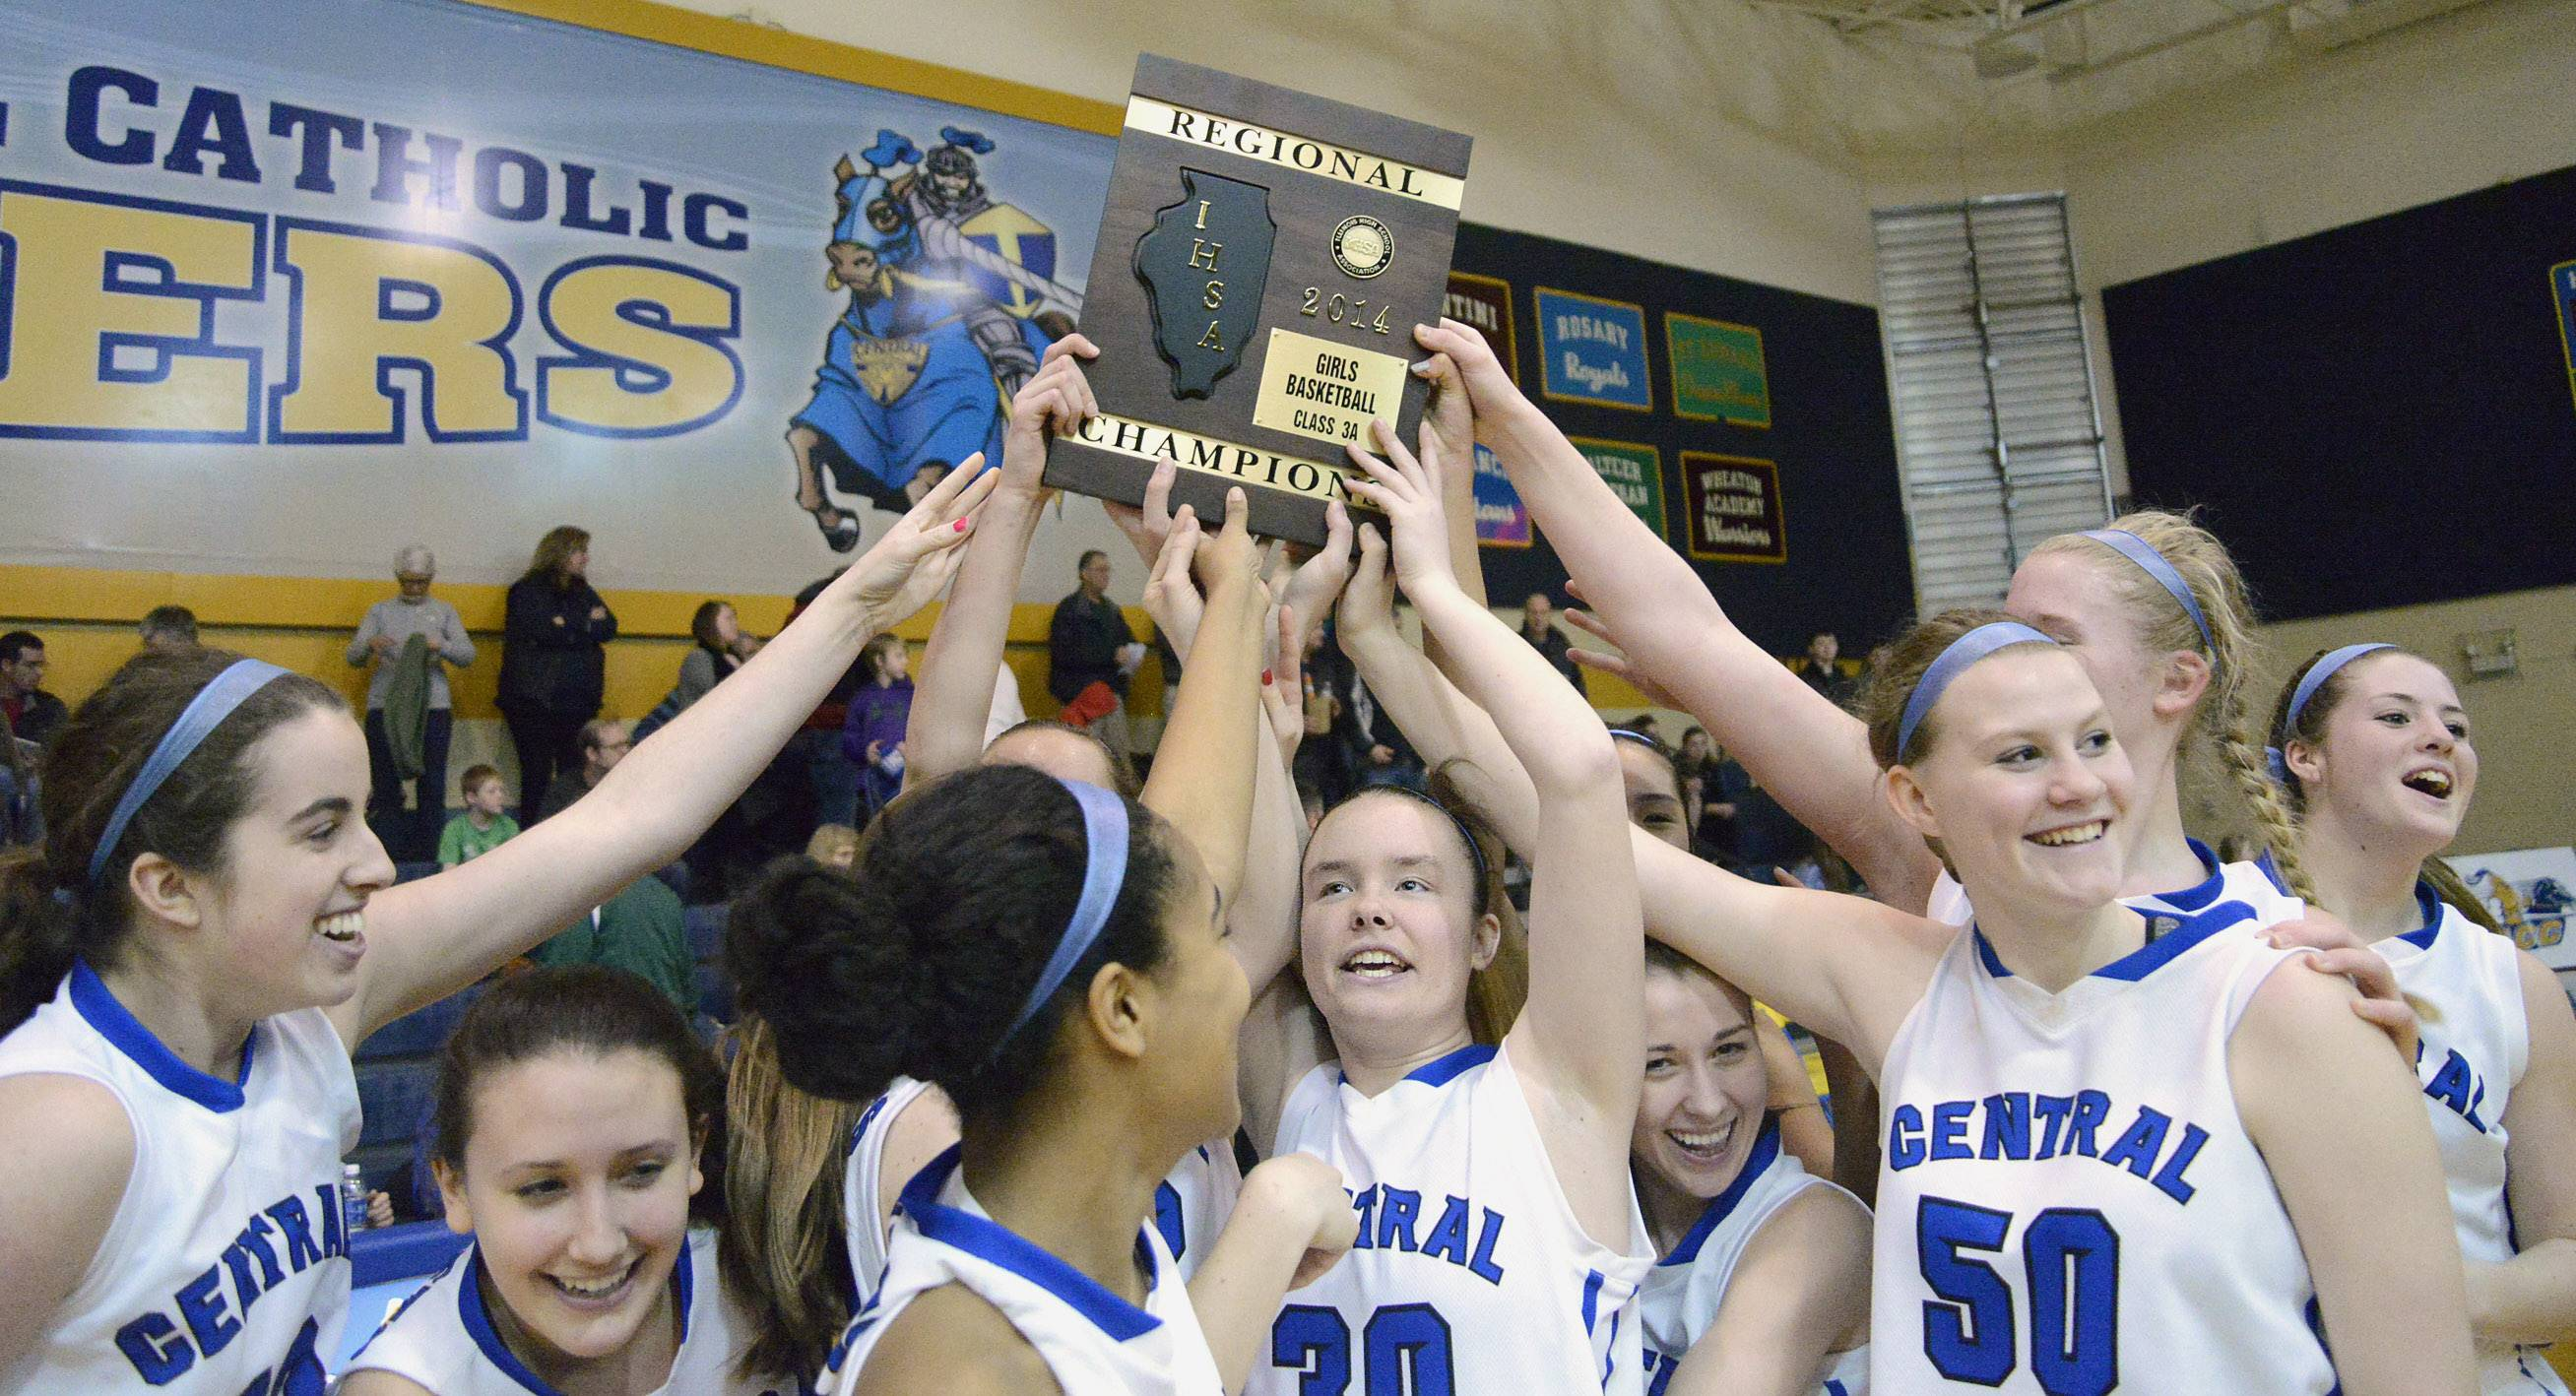 Burlington Central nabs regional title